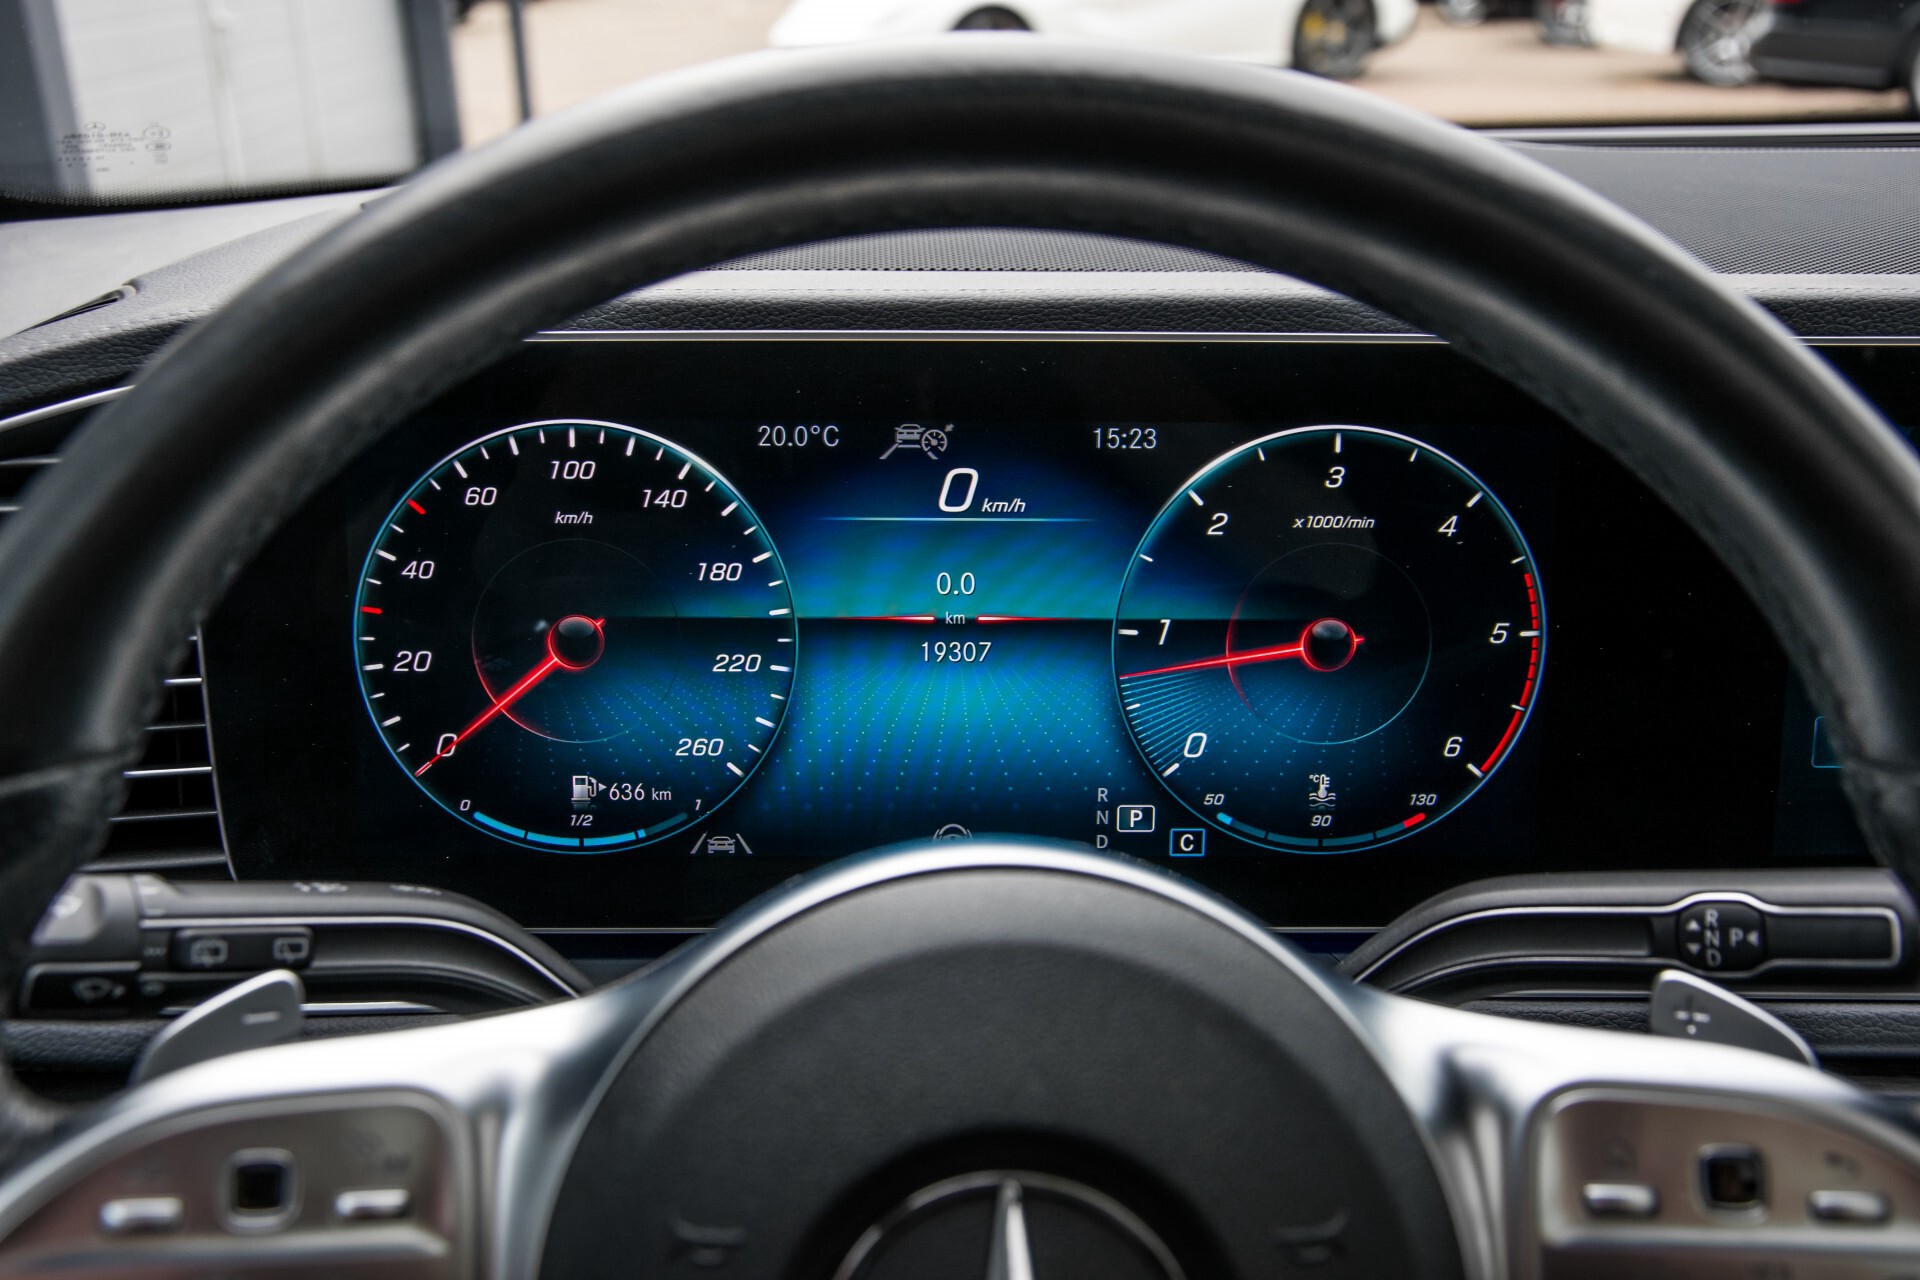 Mercedes-Benz GLE 400 d 4-M Luchtvering/Distronic/Keyless/HUD/Burmester/Nappa/360 camera/Panorama Aut9 Foto 13